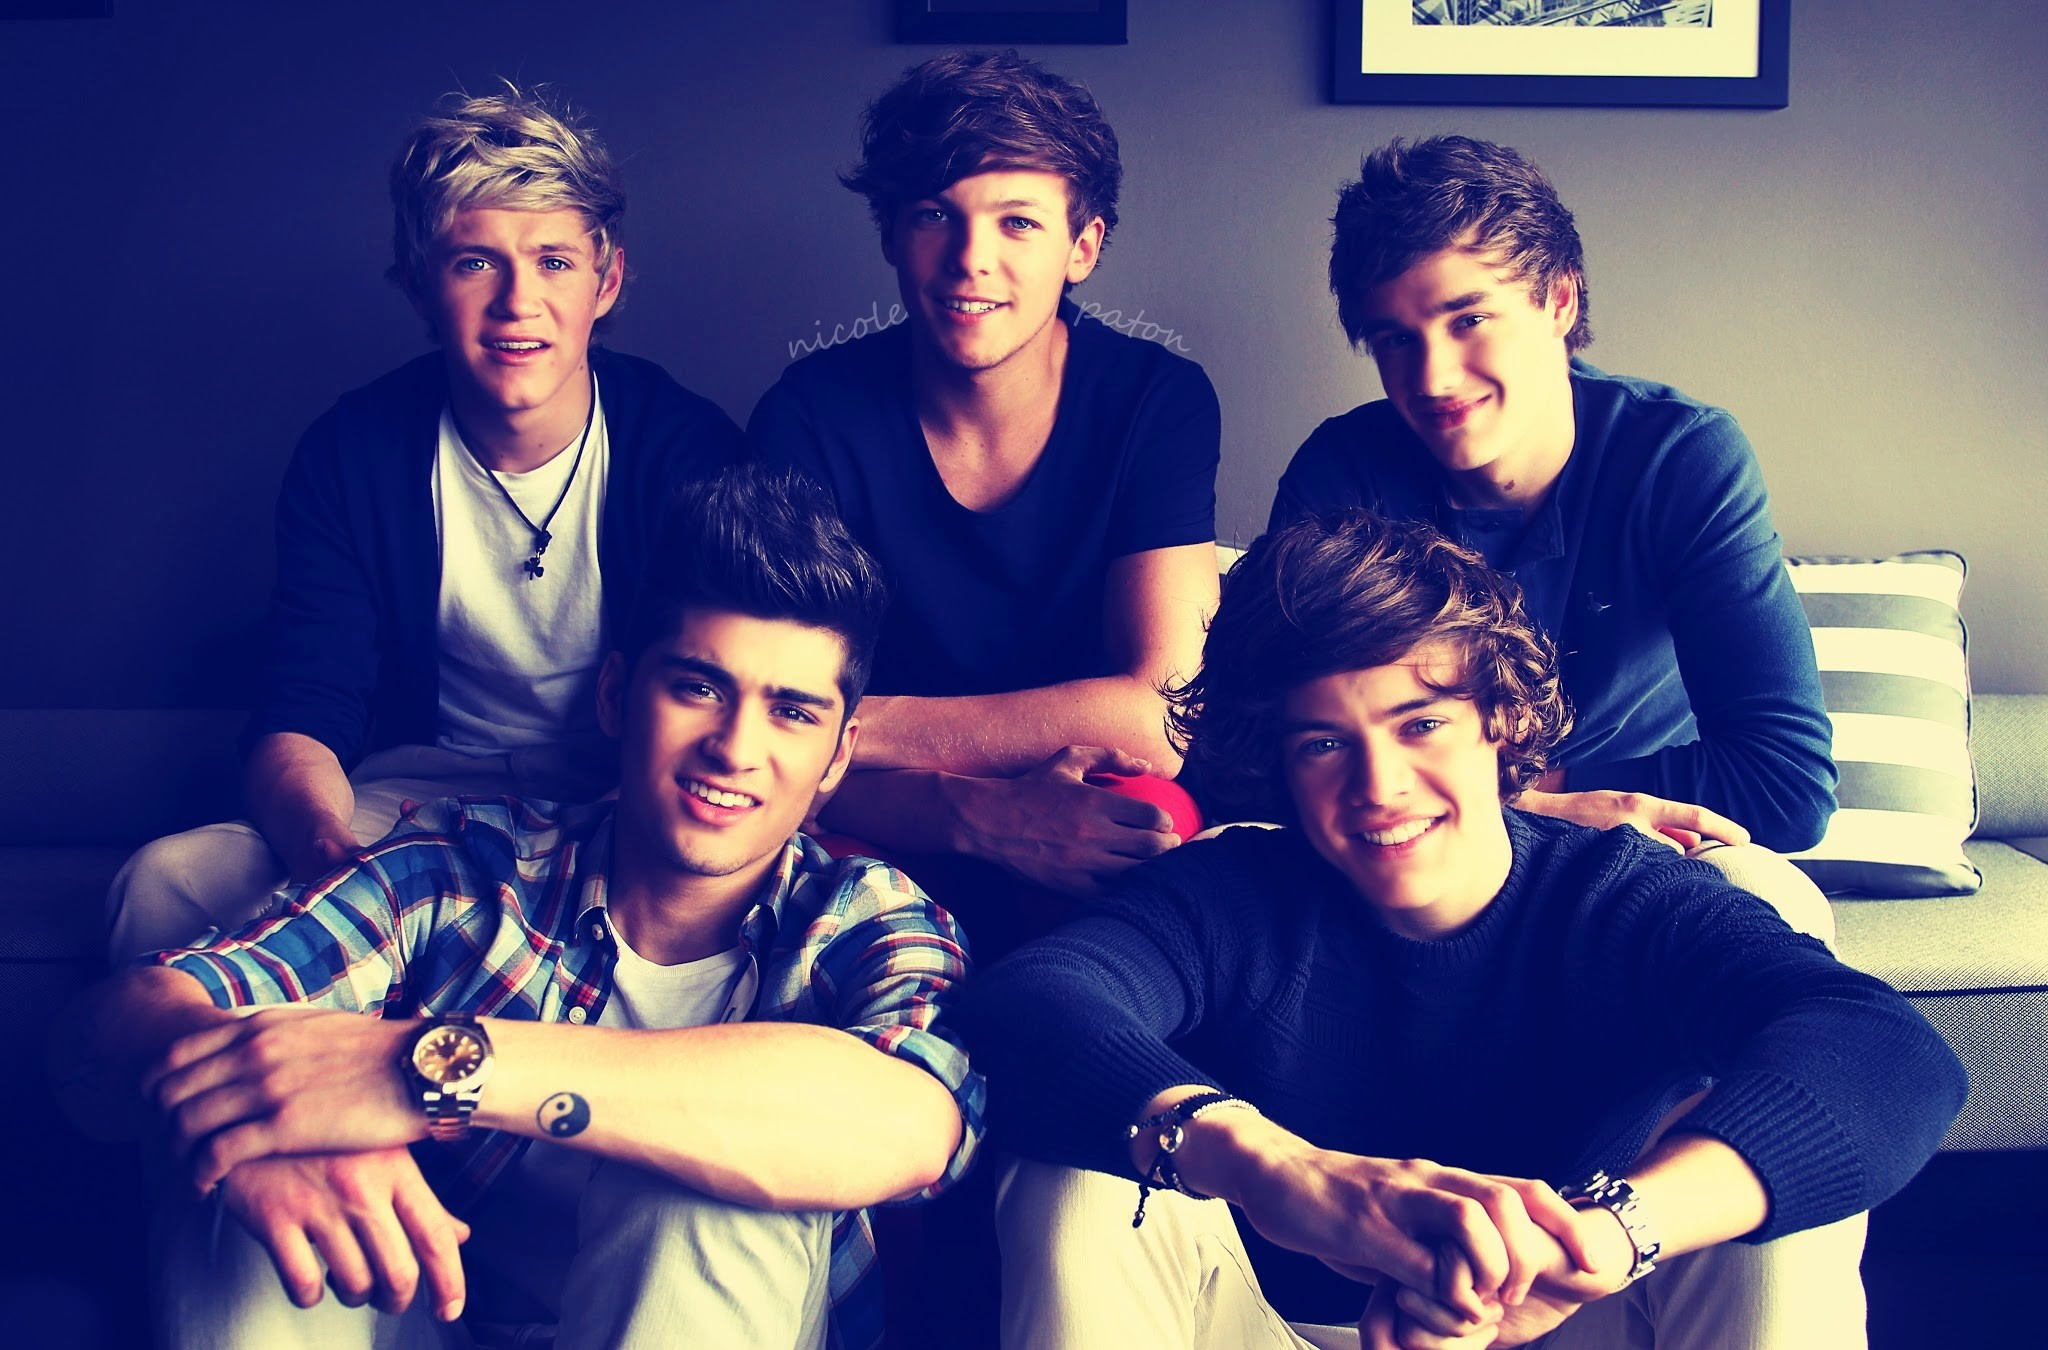 One Direction Wallpaper Widescreen - One Direction Wallpapers Hd - HD Wallpaper